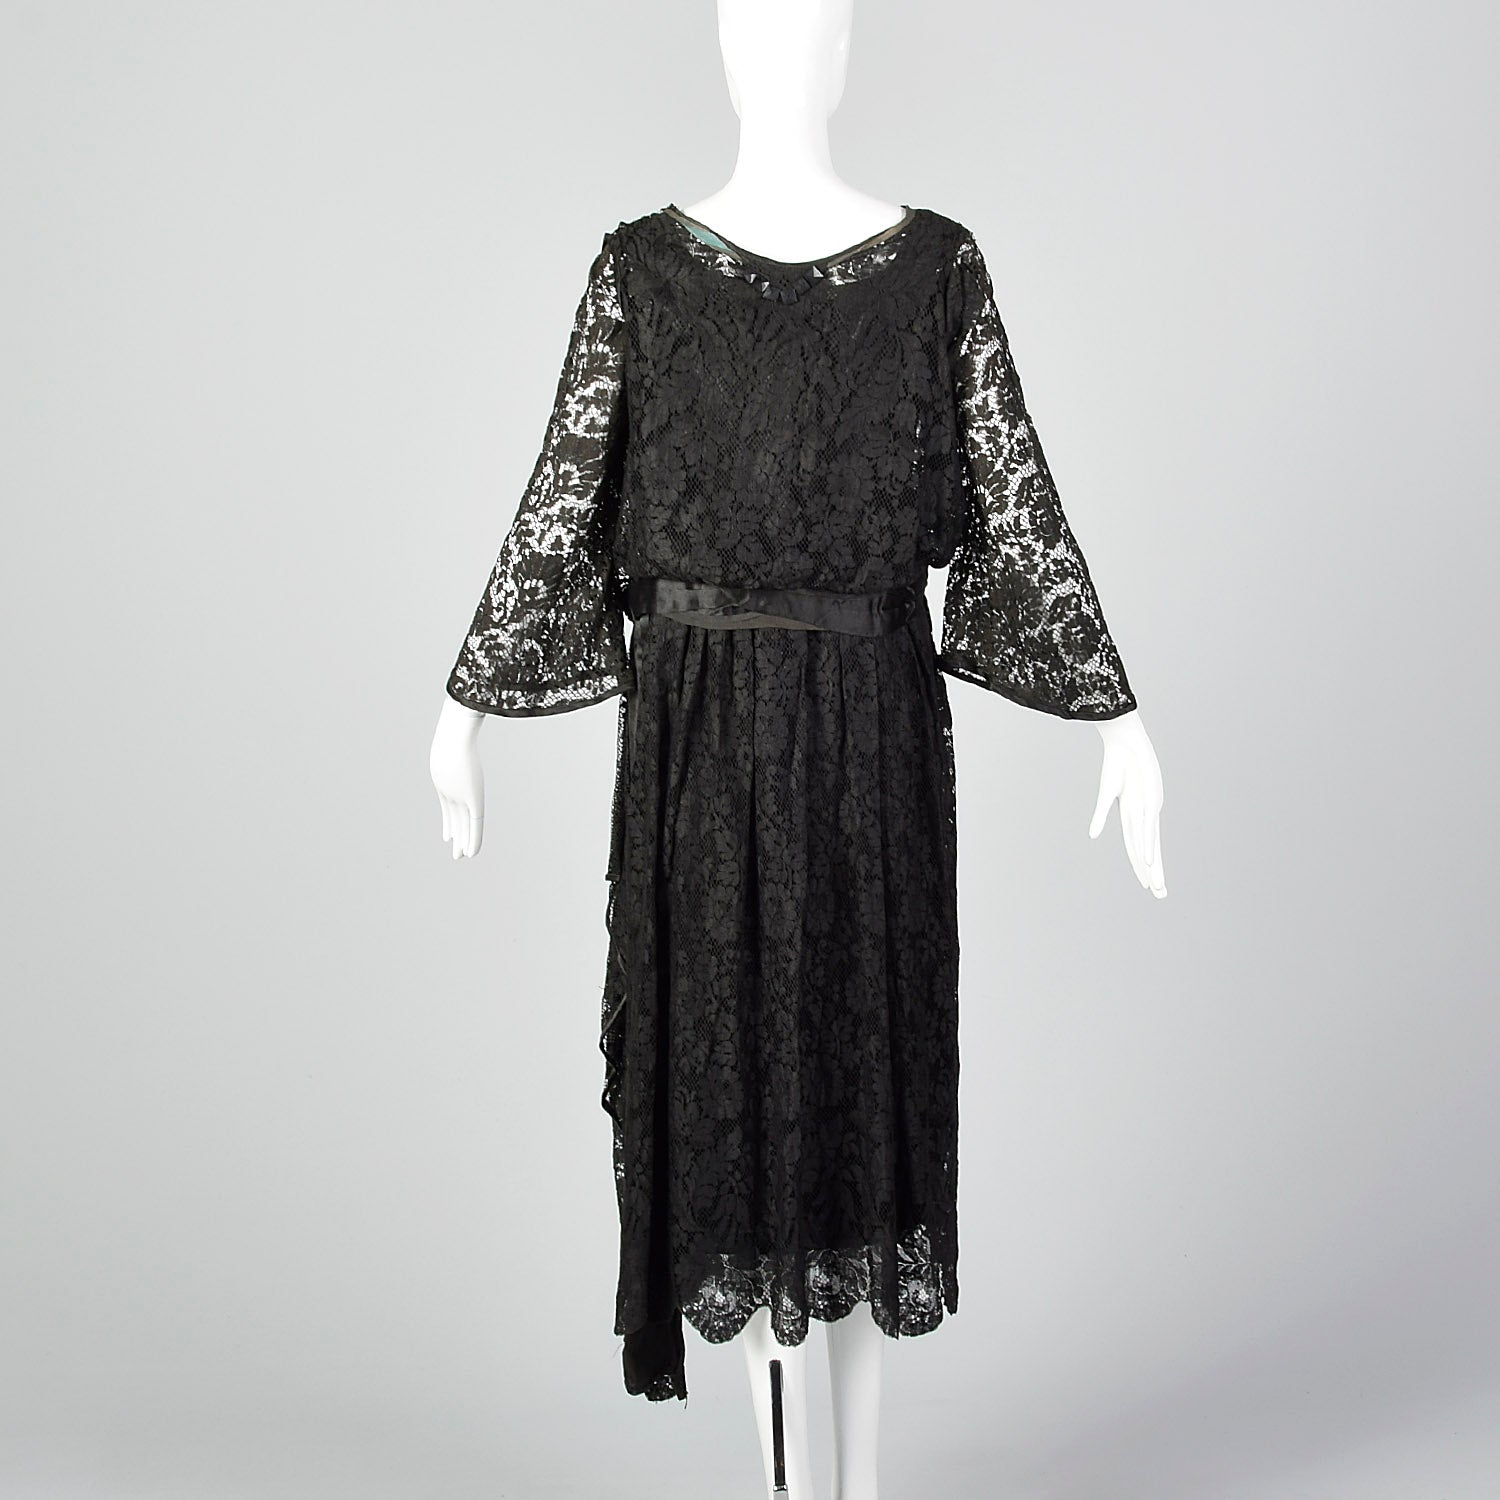 1920s Lace Dress with Hip Sash and Bell Sleeves